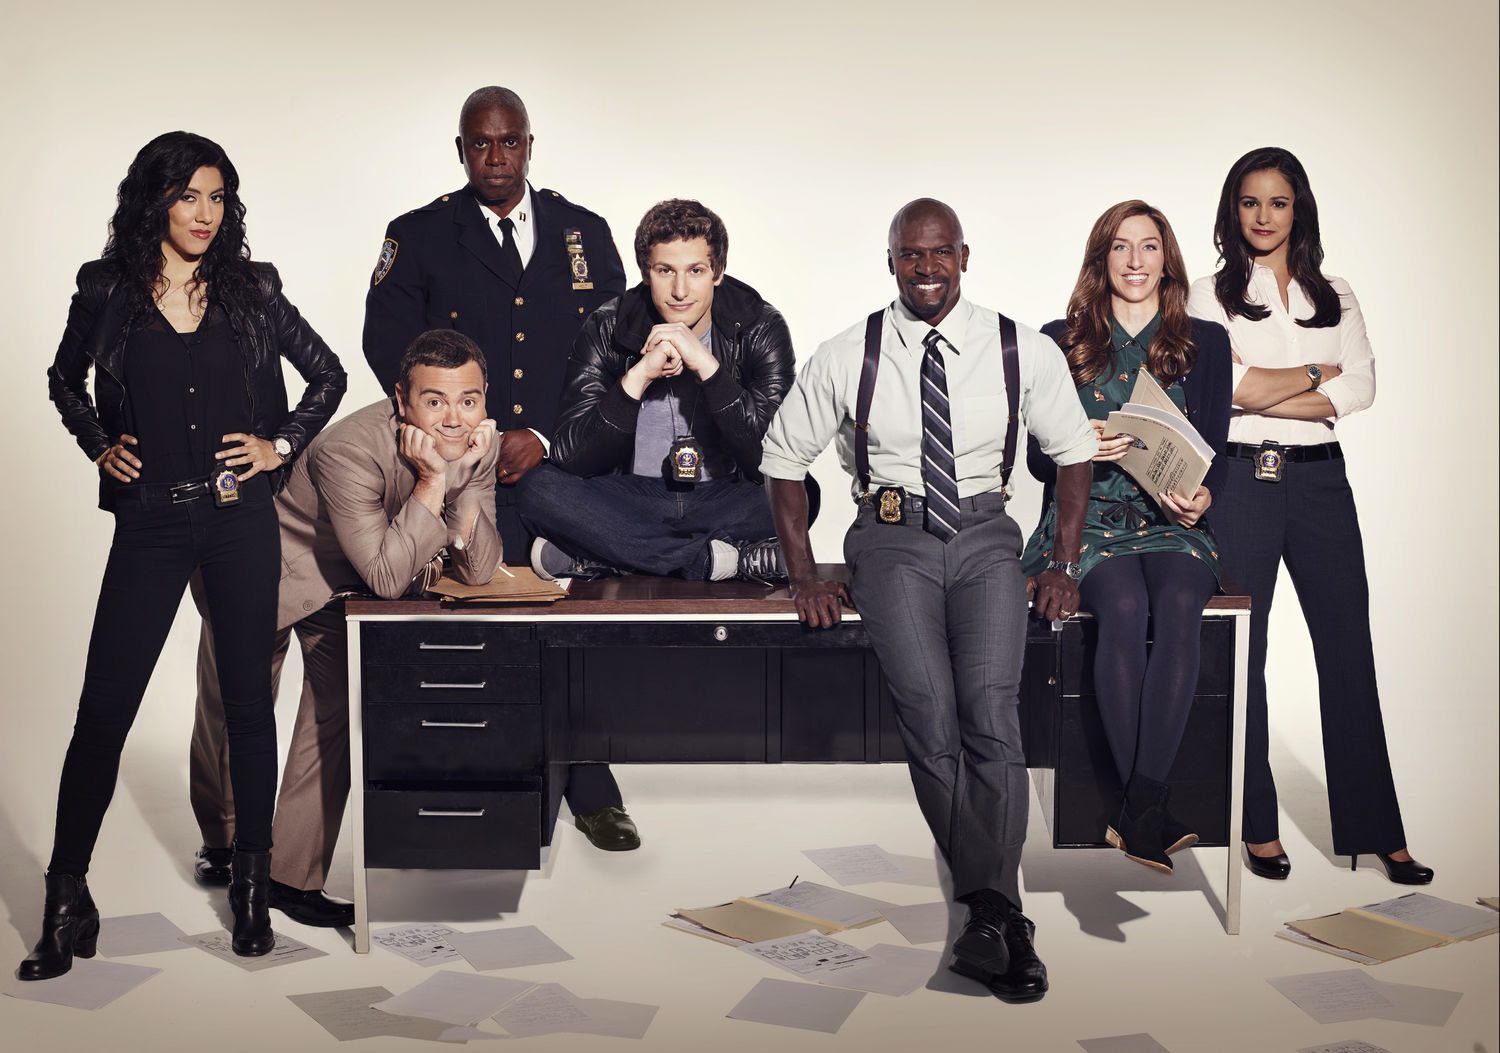 http://media.proceso.com.mx/media/2014/04/brooklyn-99-cast-main.jpg